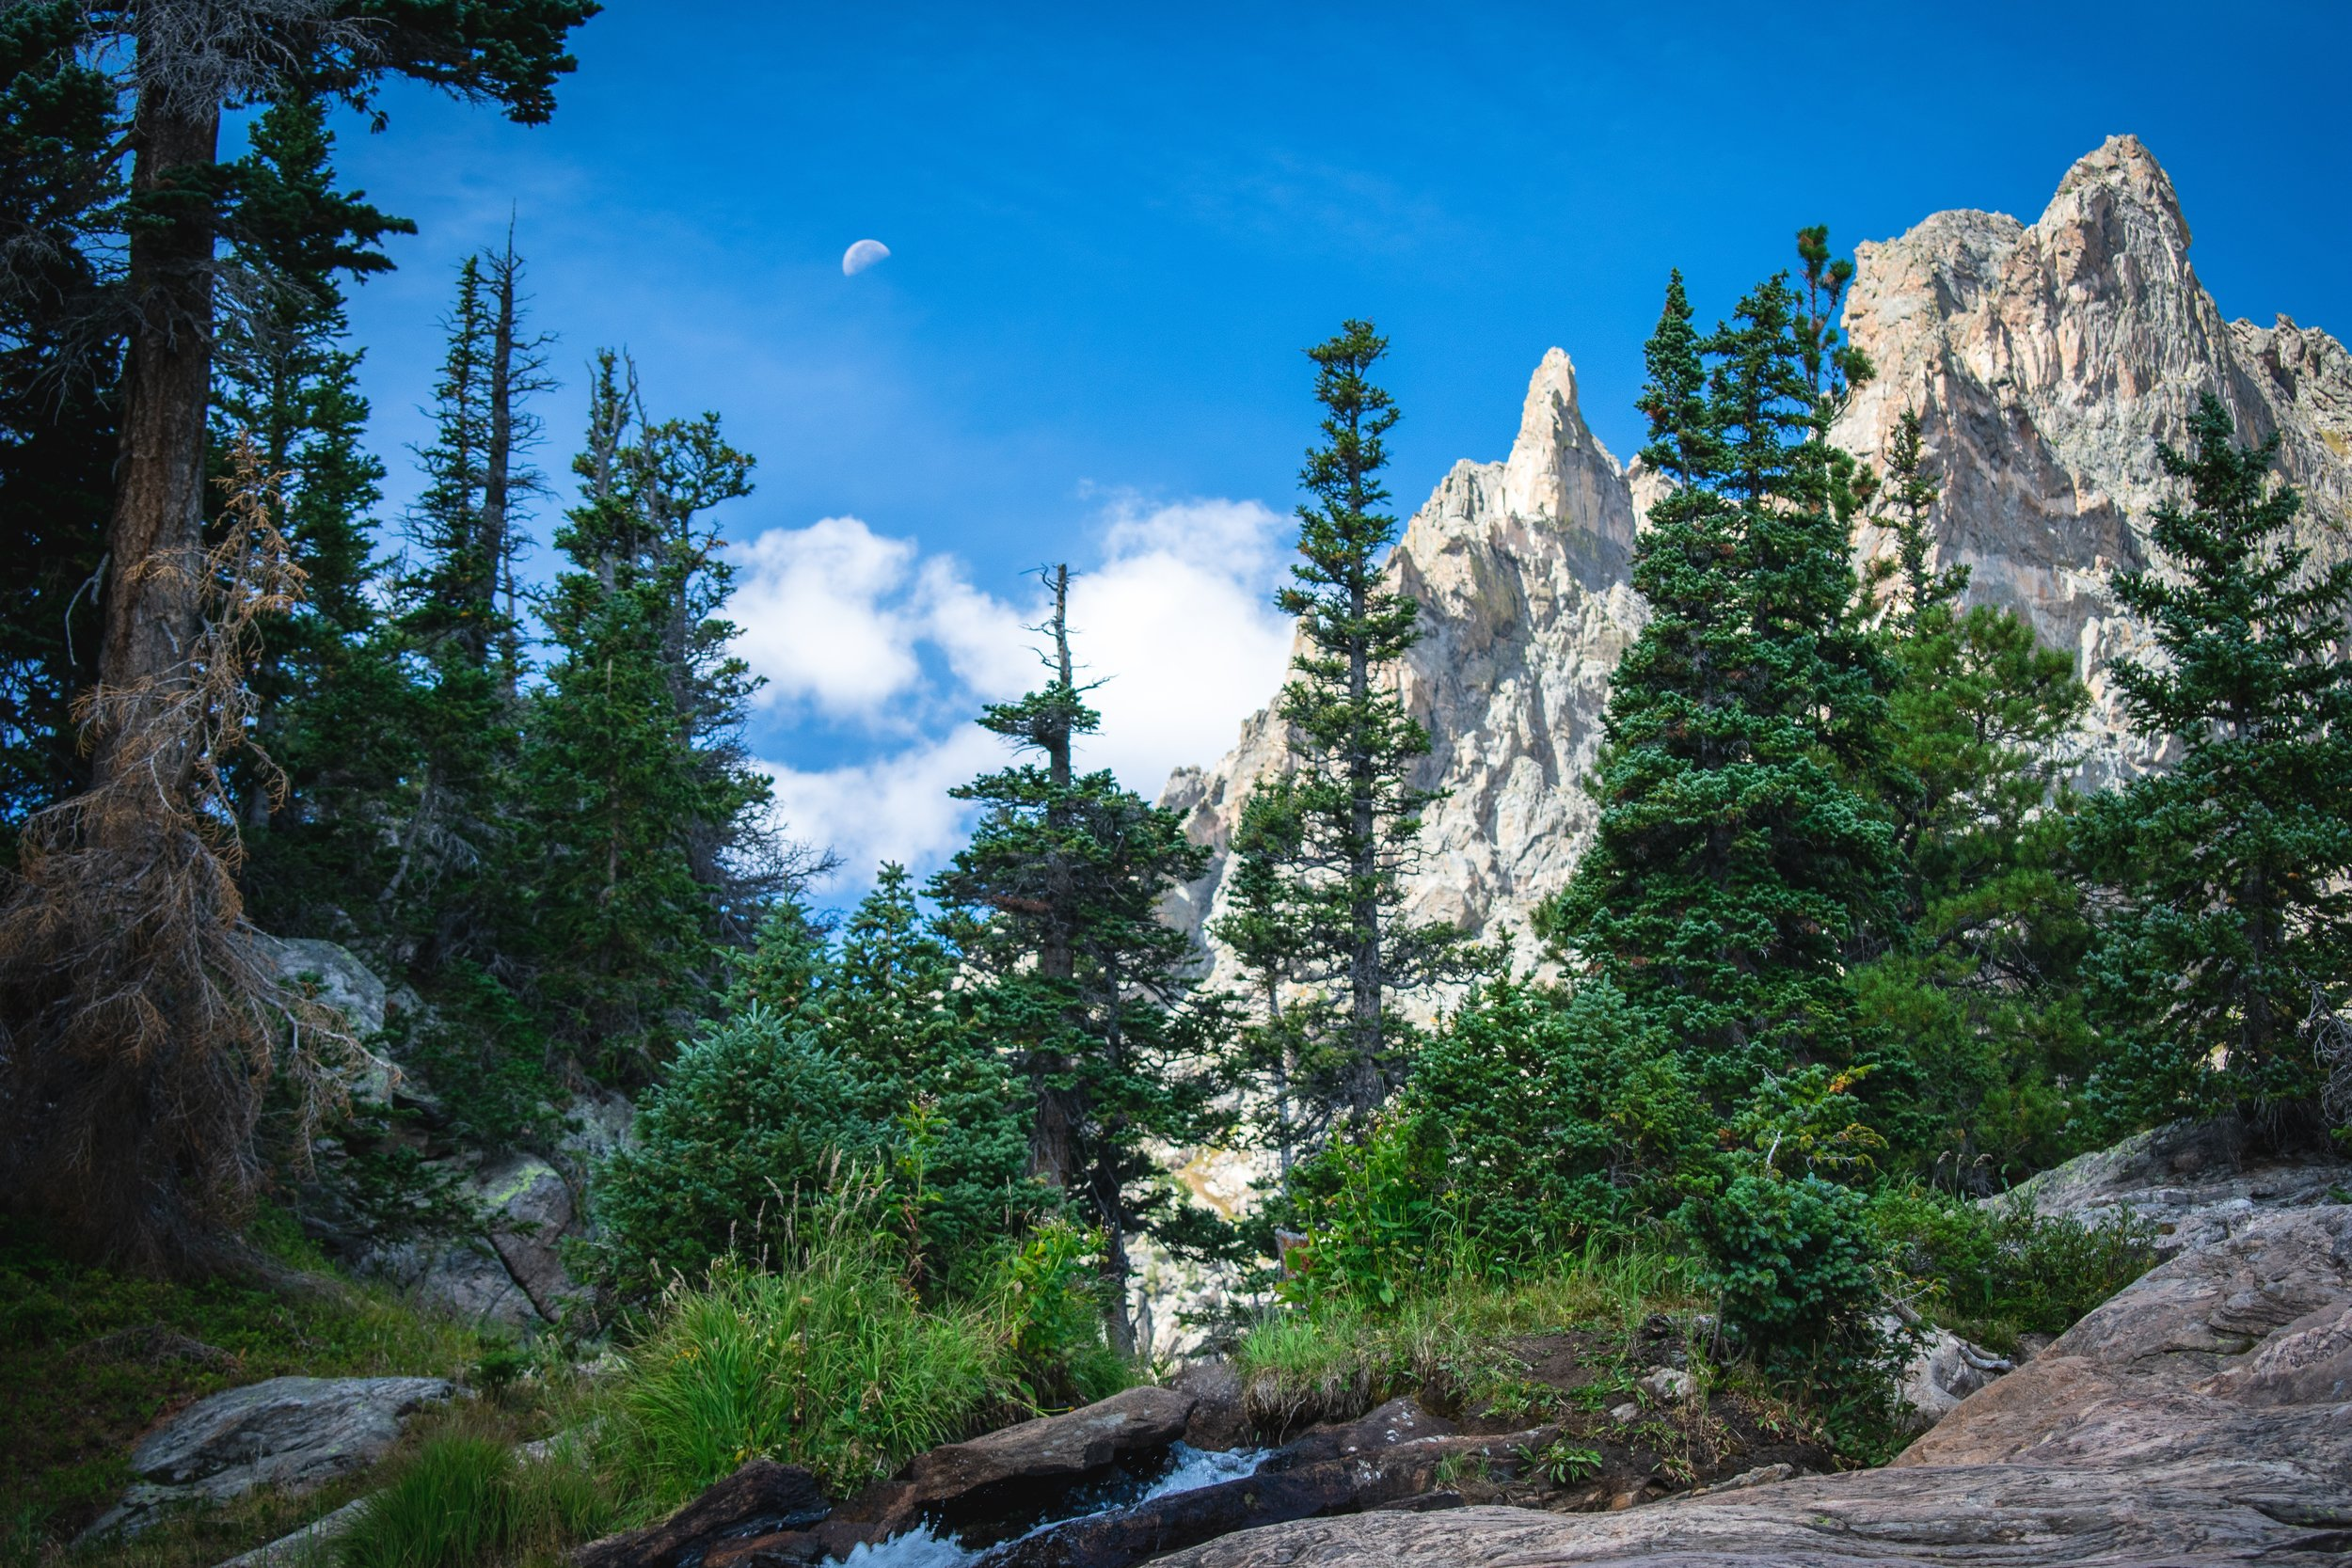 the best hiking trips, trails and Places to visit in colorado: list by Angeloutdoors.com